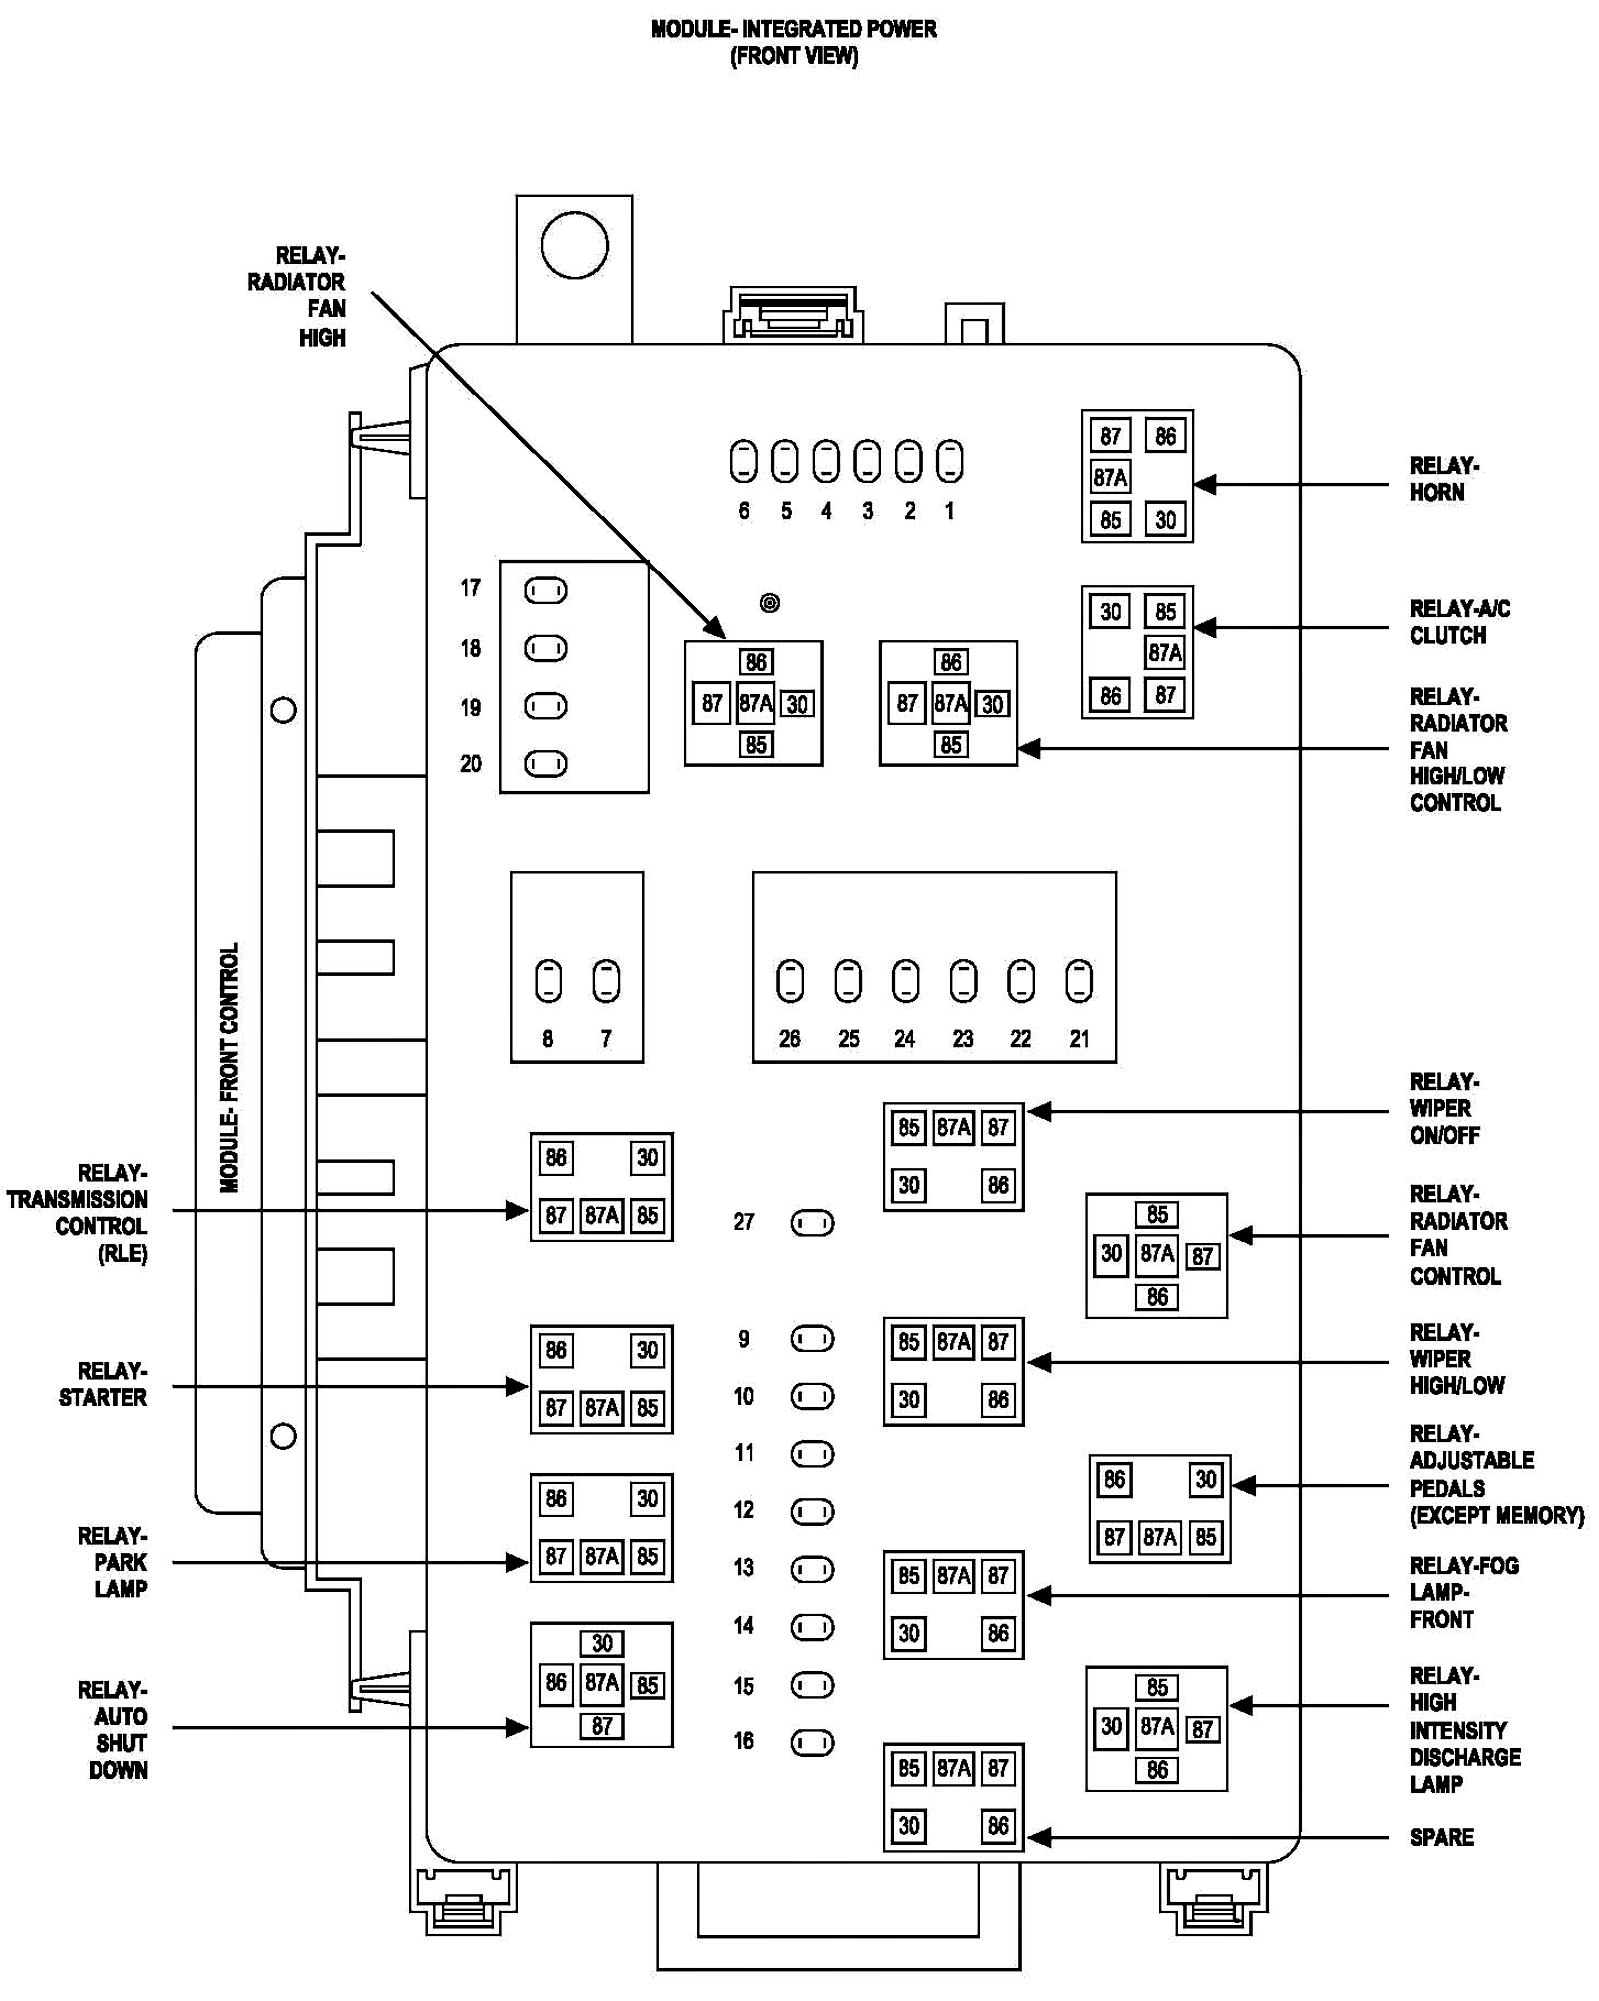 2001 Chrysler Sebring Fuse Diagram